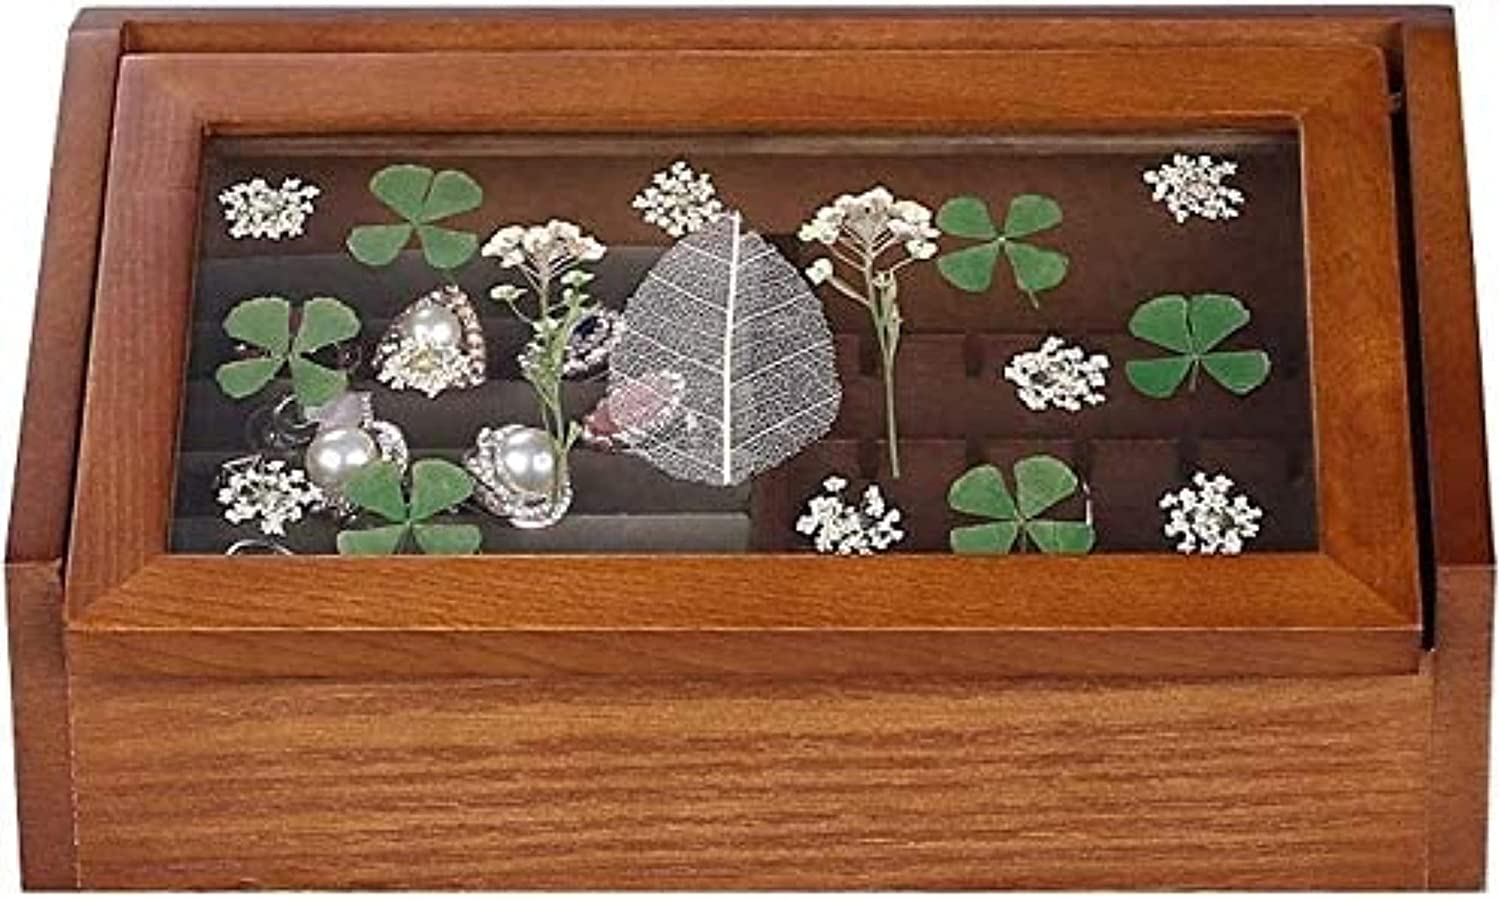 ZXCVBNN security Wooden jewelry box Glass Retro cover 5 ☆ very popular Jewelry cabinet top